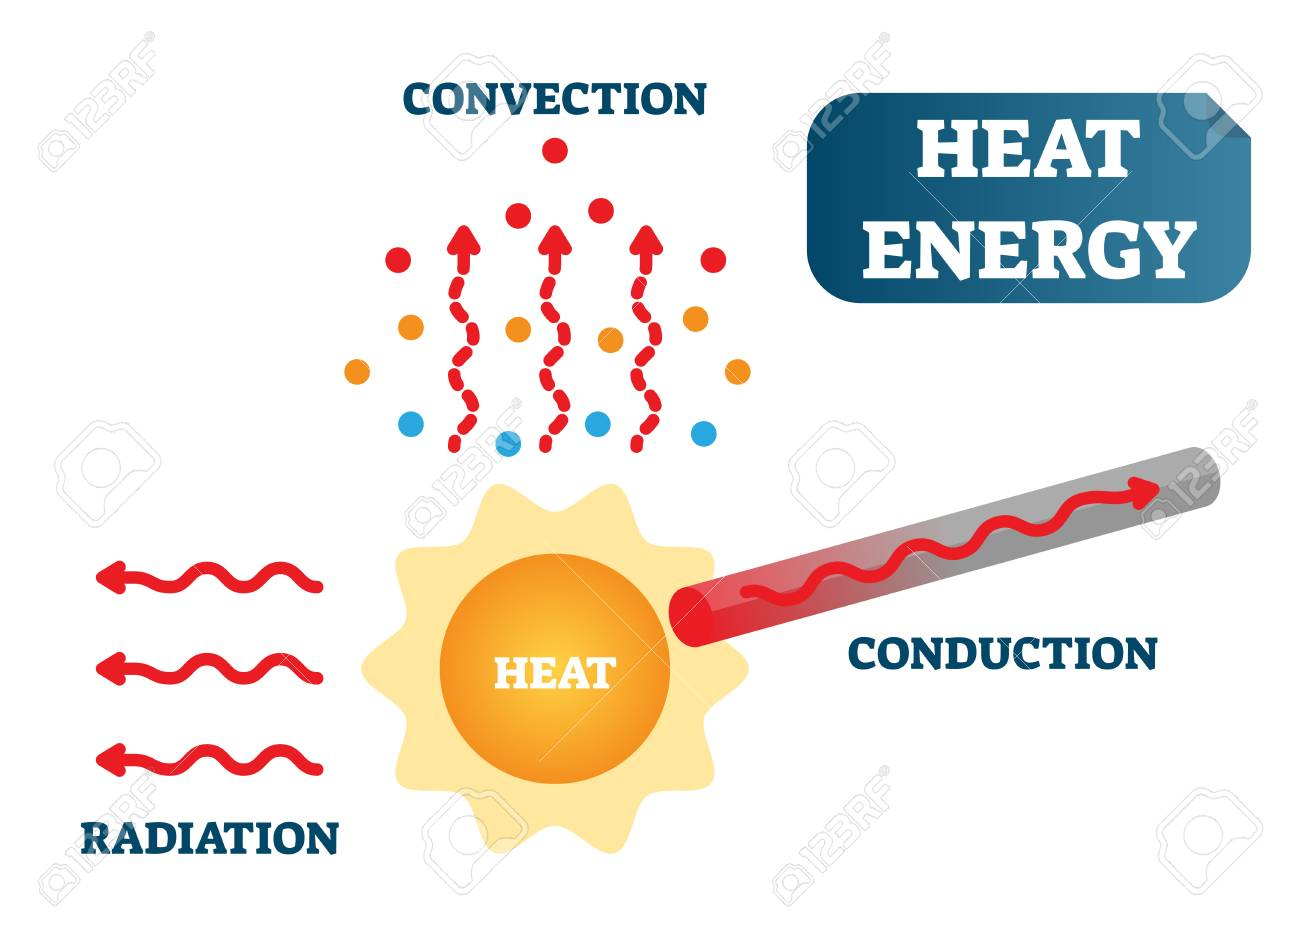 hight resolution of heat energy as convection conduction and radiation physics science vector illustration poster diagram with